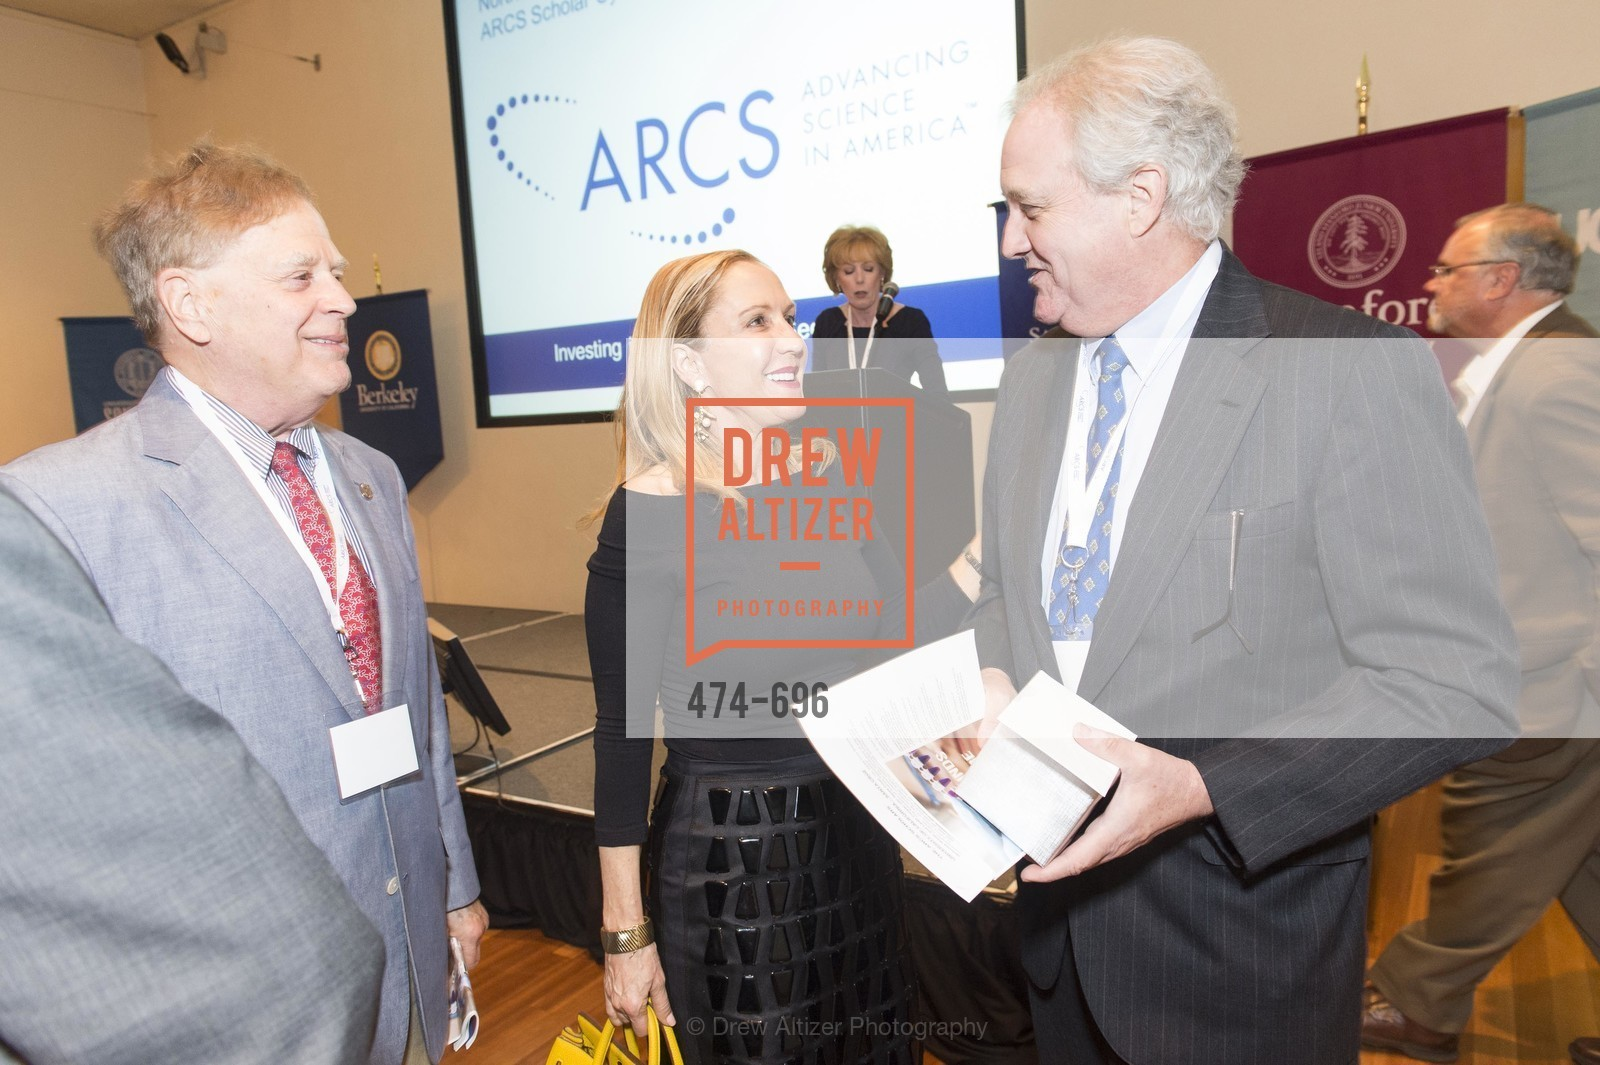 Mike Malone, ARCS FOUNDATION Scholar Symposium, US, May 5th, 2015,Drew Altizer, Drew Altizer Photography, full-service event agency, private events, San Francisco photographer, photographer California